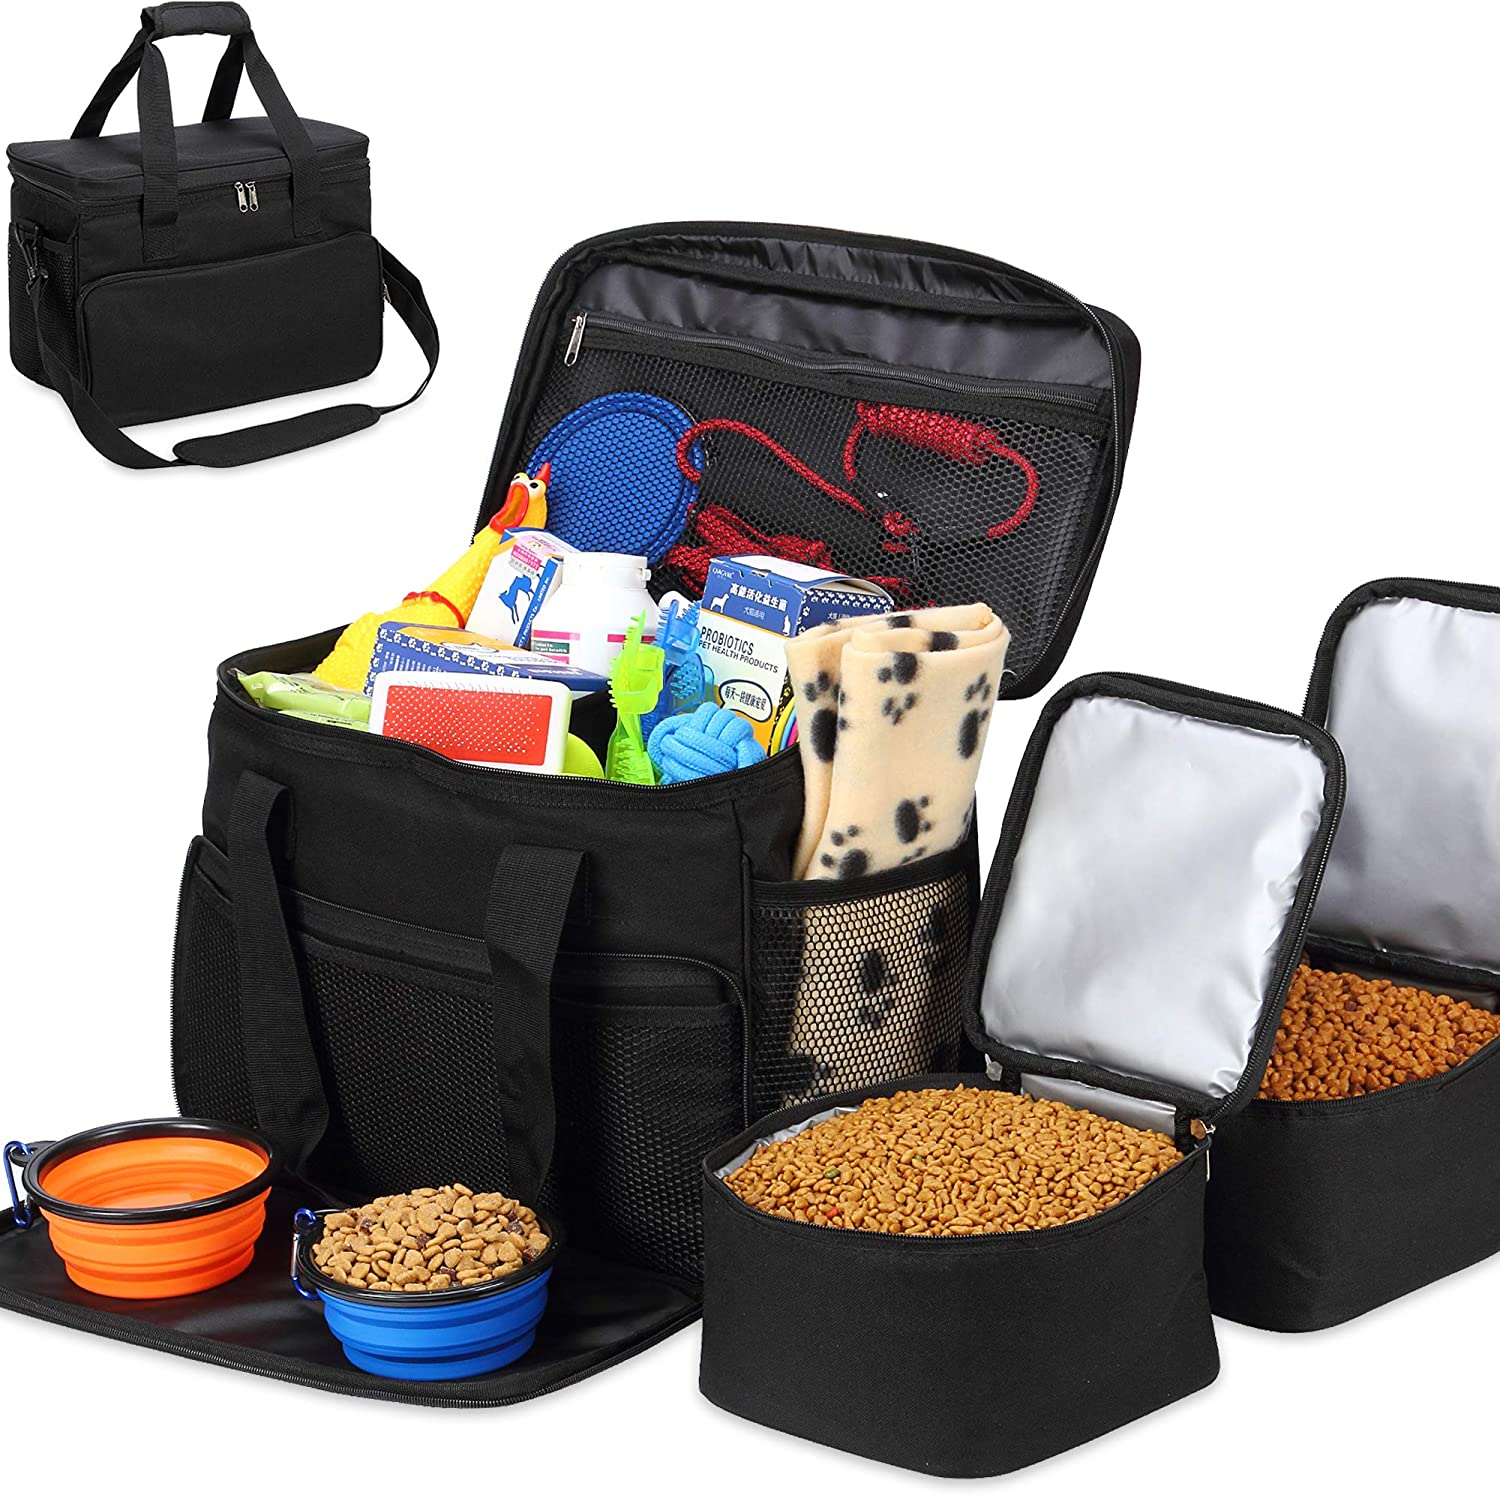 Kundu Cat & Dog Travel Bag - Includes 2 Food Carriers, 2 Bowls & Place Mat - Airline Approved - Black